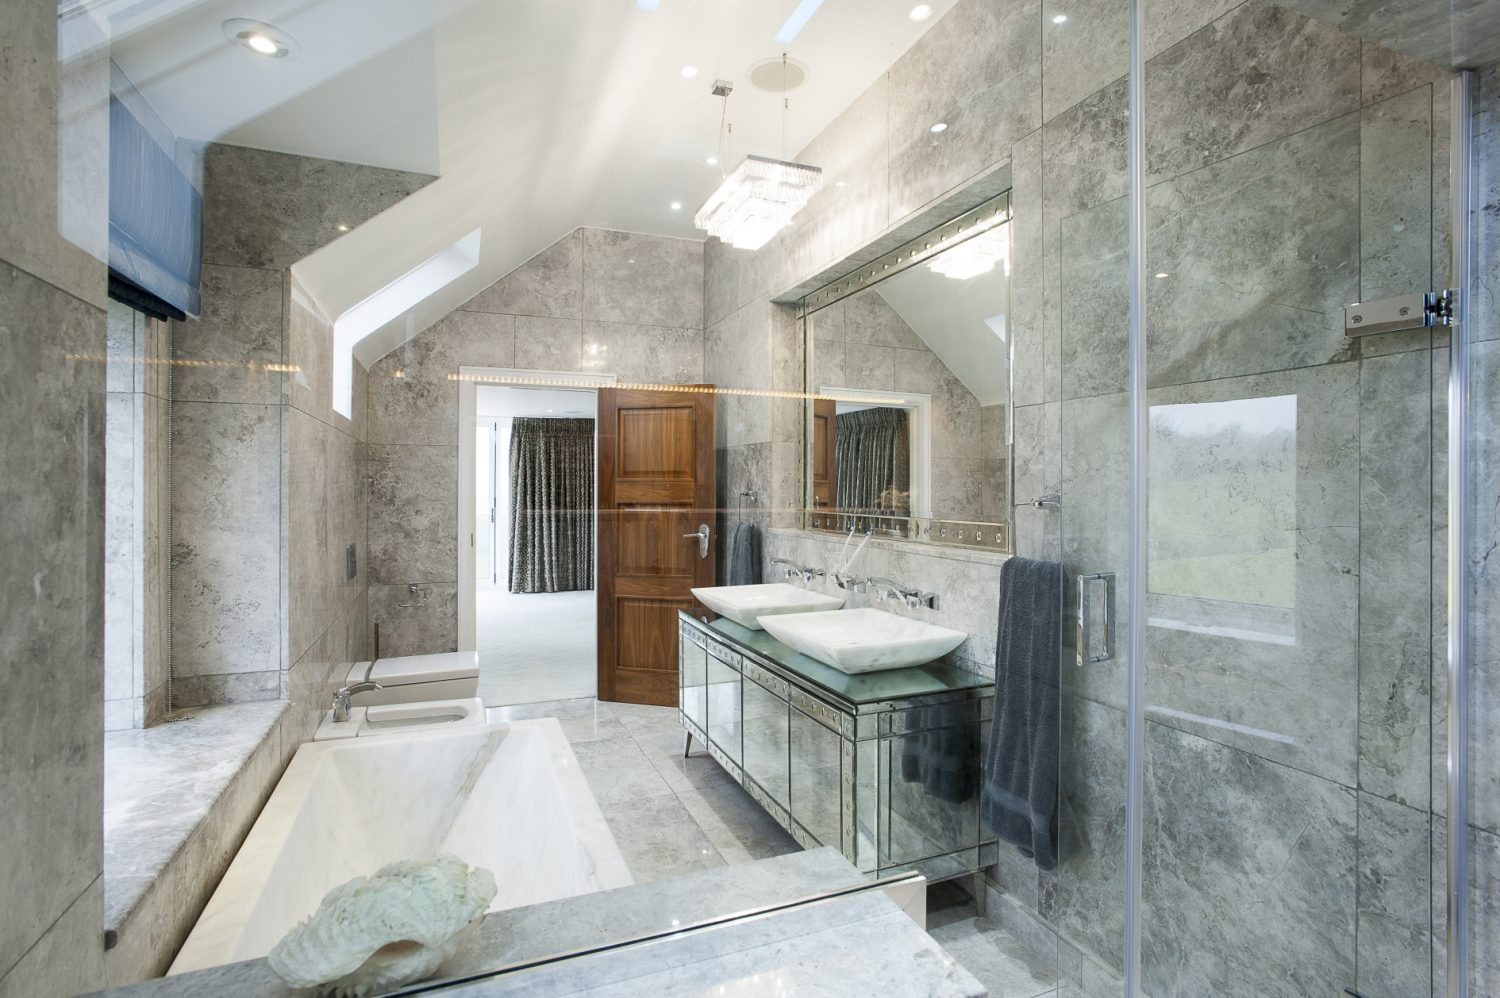 Weighing three tonnes, manoeuvring the bath into the master bathroom was a nightmare. Barry Hutson hit on a brilliant solution to carefully slide it off its massive trolley onto a block of ice that then slowly melted, lowering it into exactly the right position